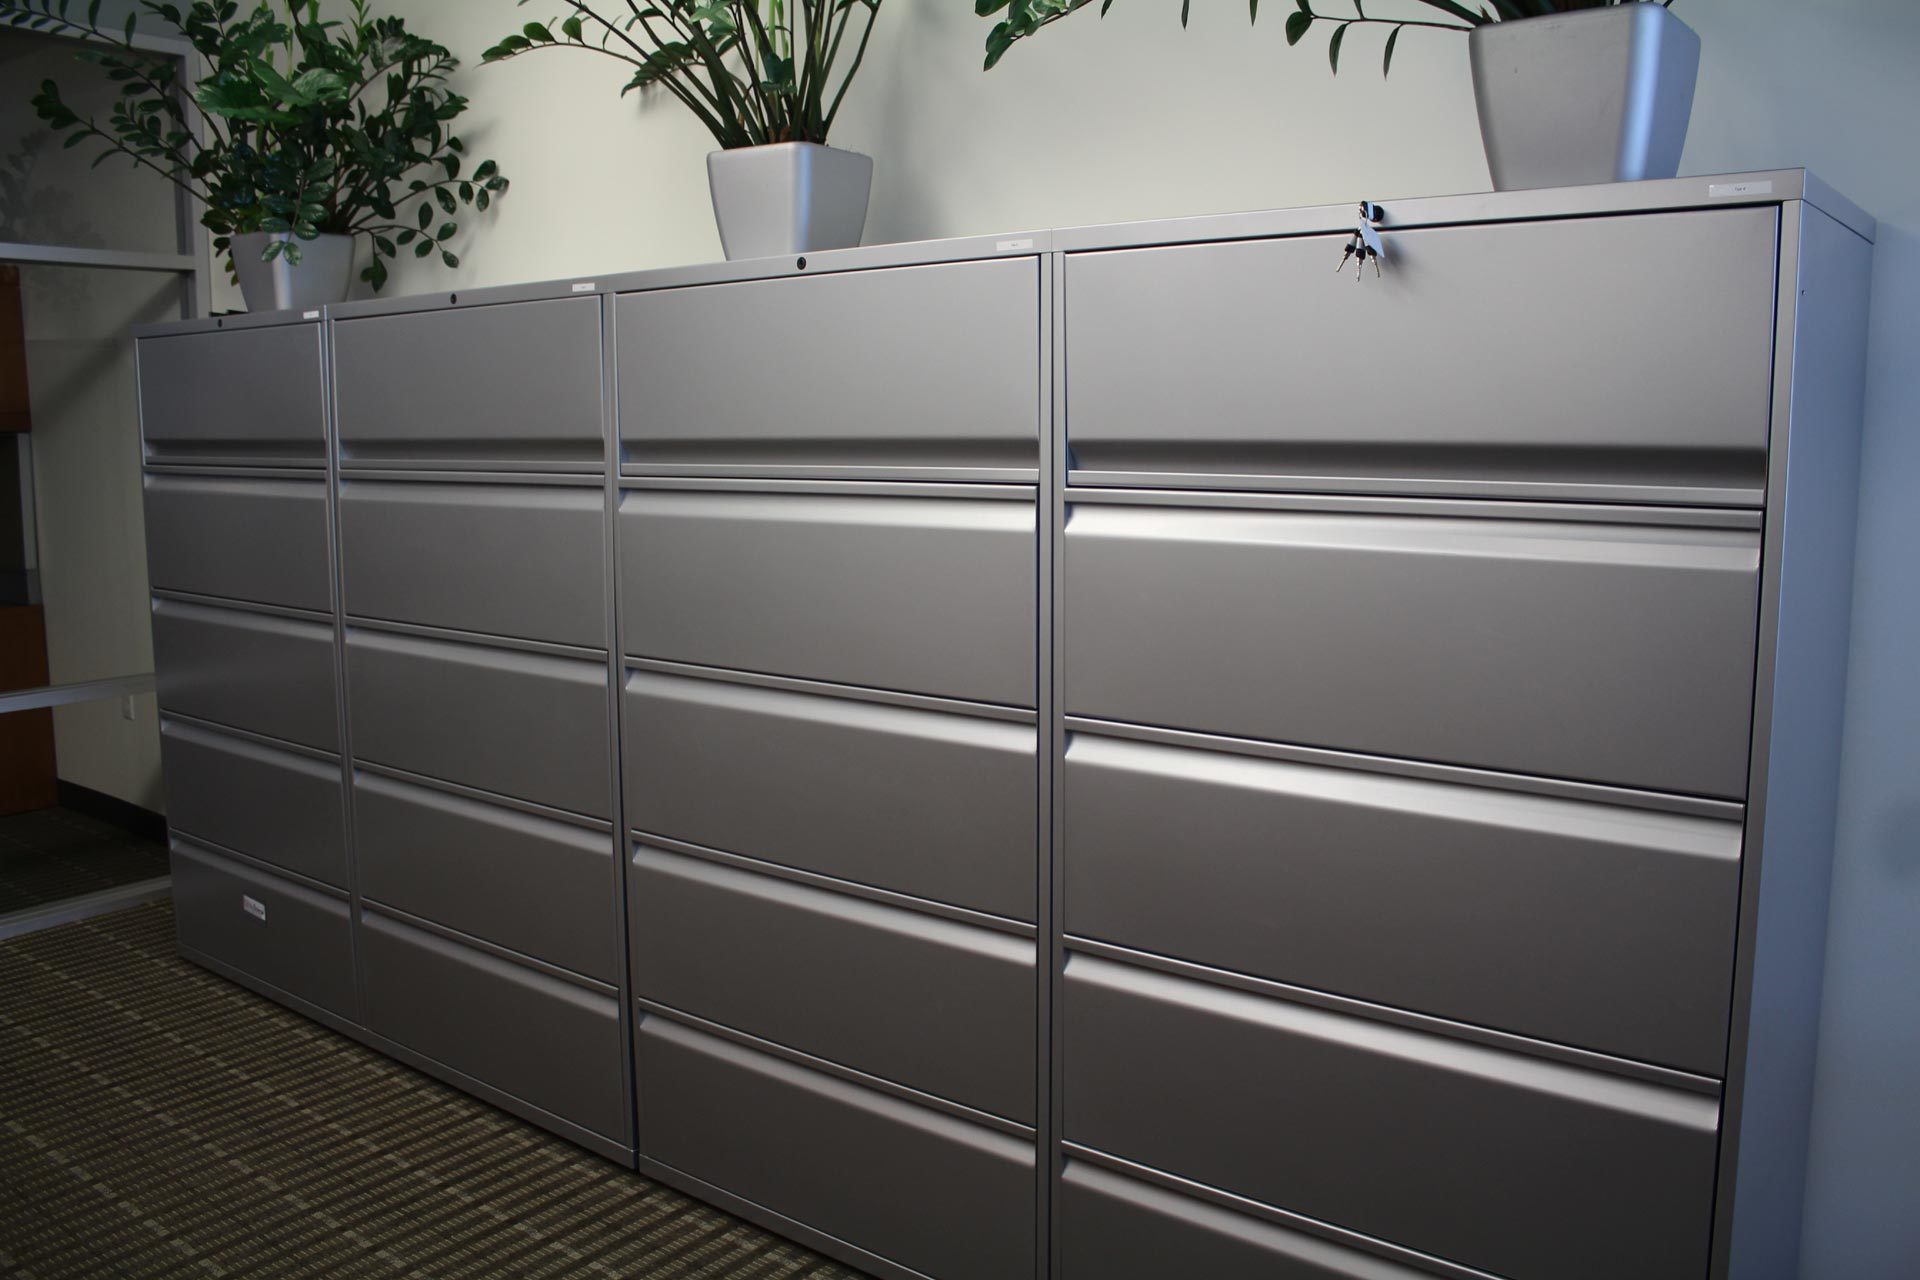 Knoll Callibre 5 drawer